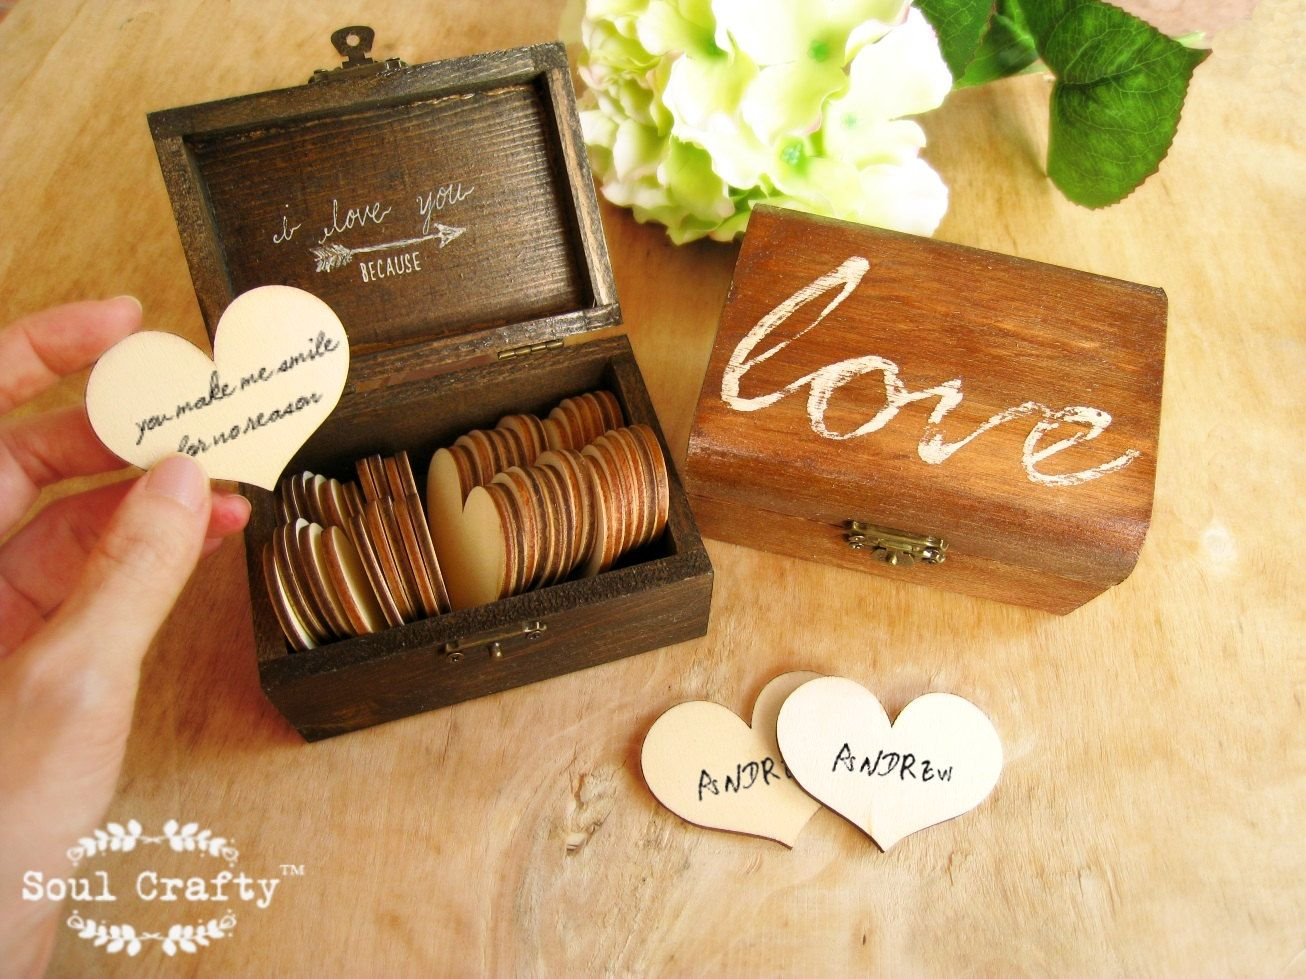 Valentine scrapbook ideas for him - 30 Reasons I Love You Because Wooden Heart By Soulcraftygarden Wooden Anniversary Gifts For Himanniversary